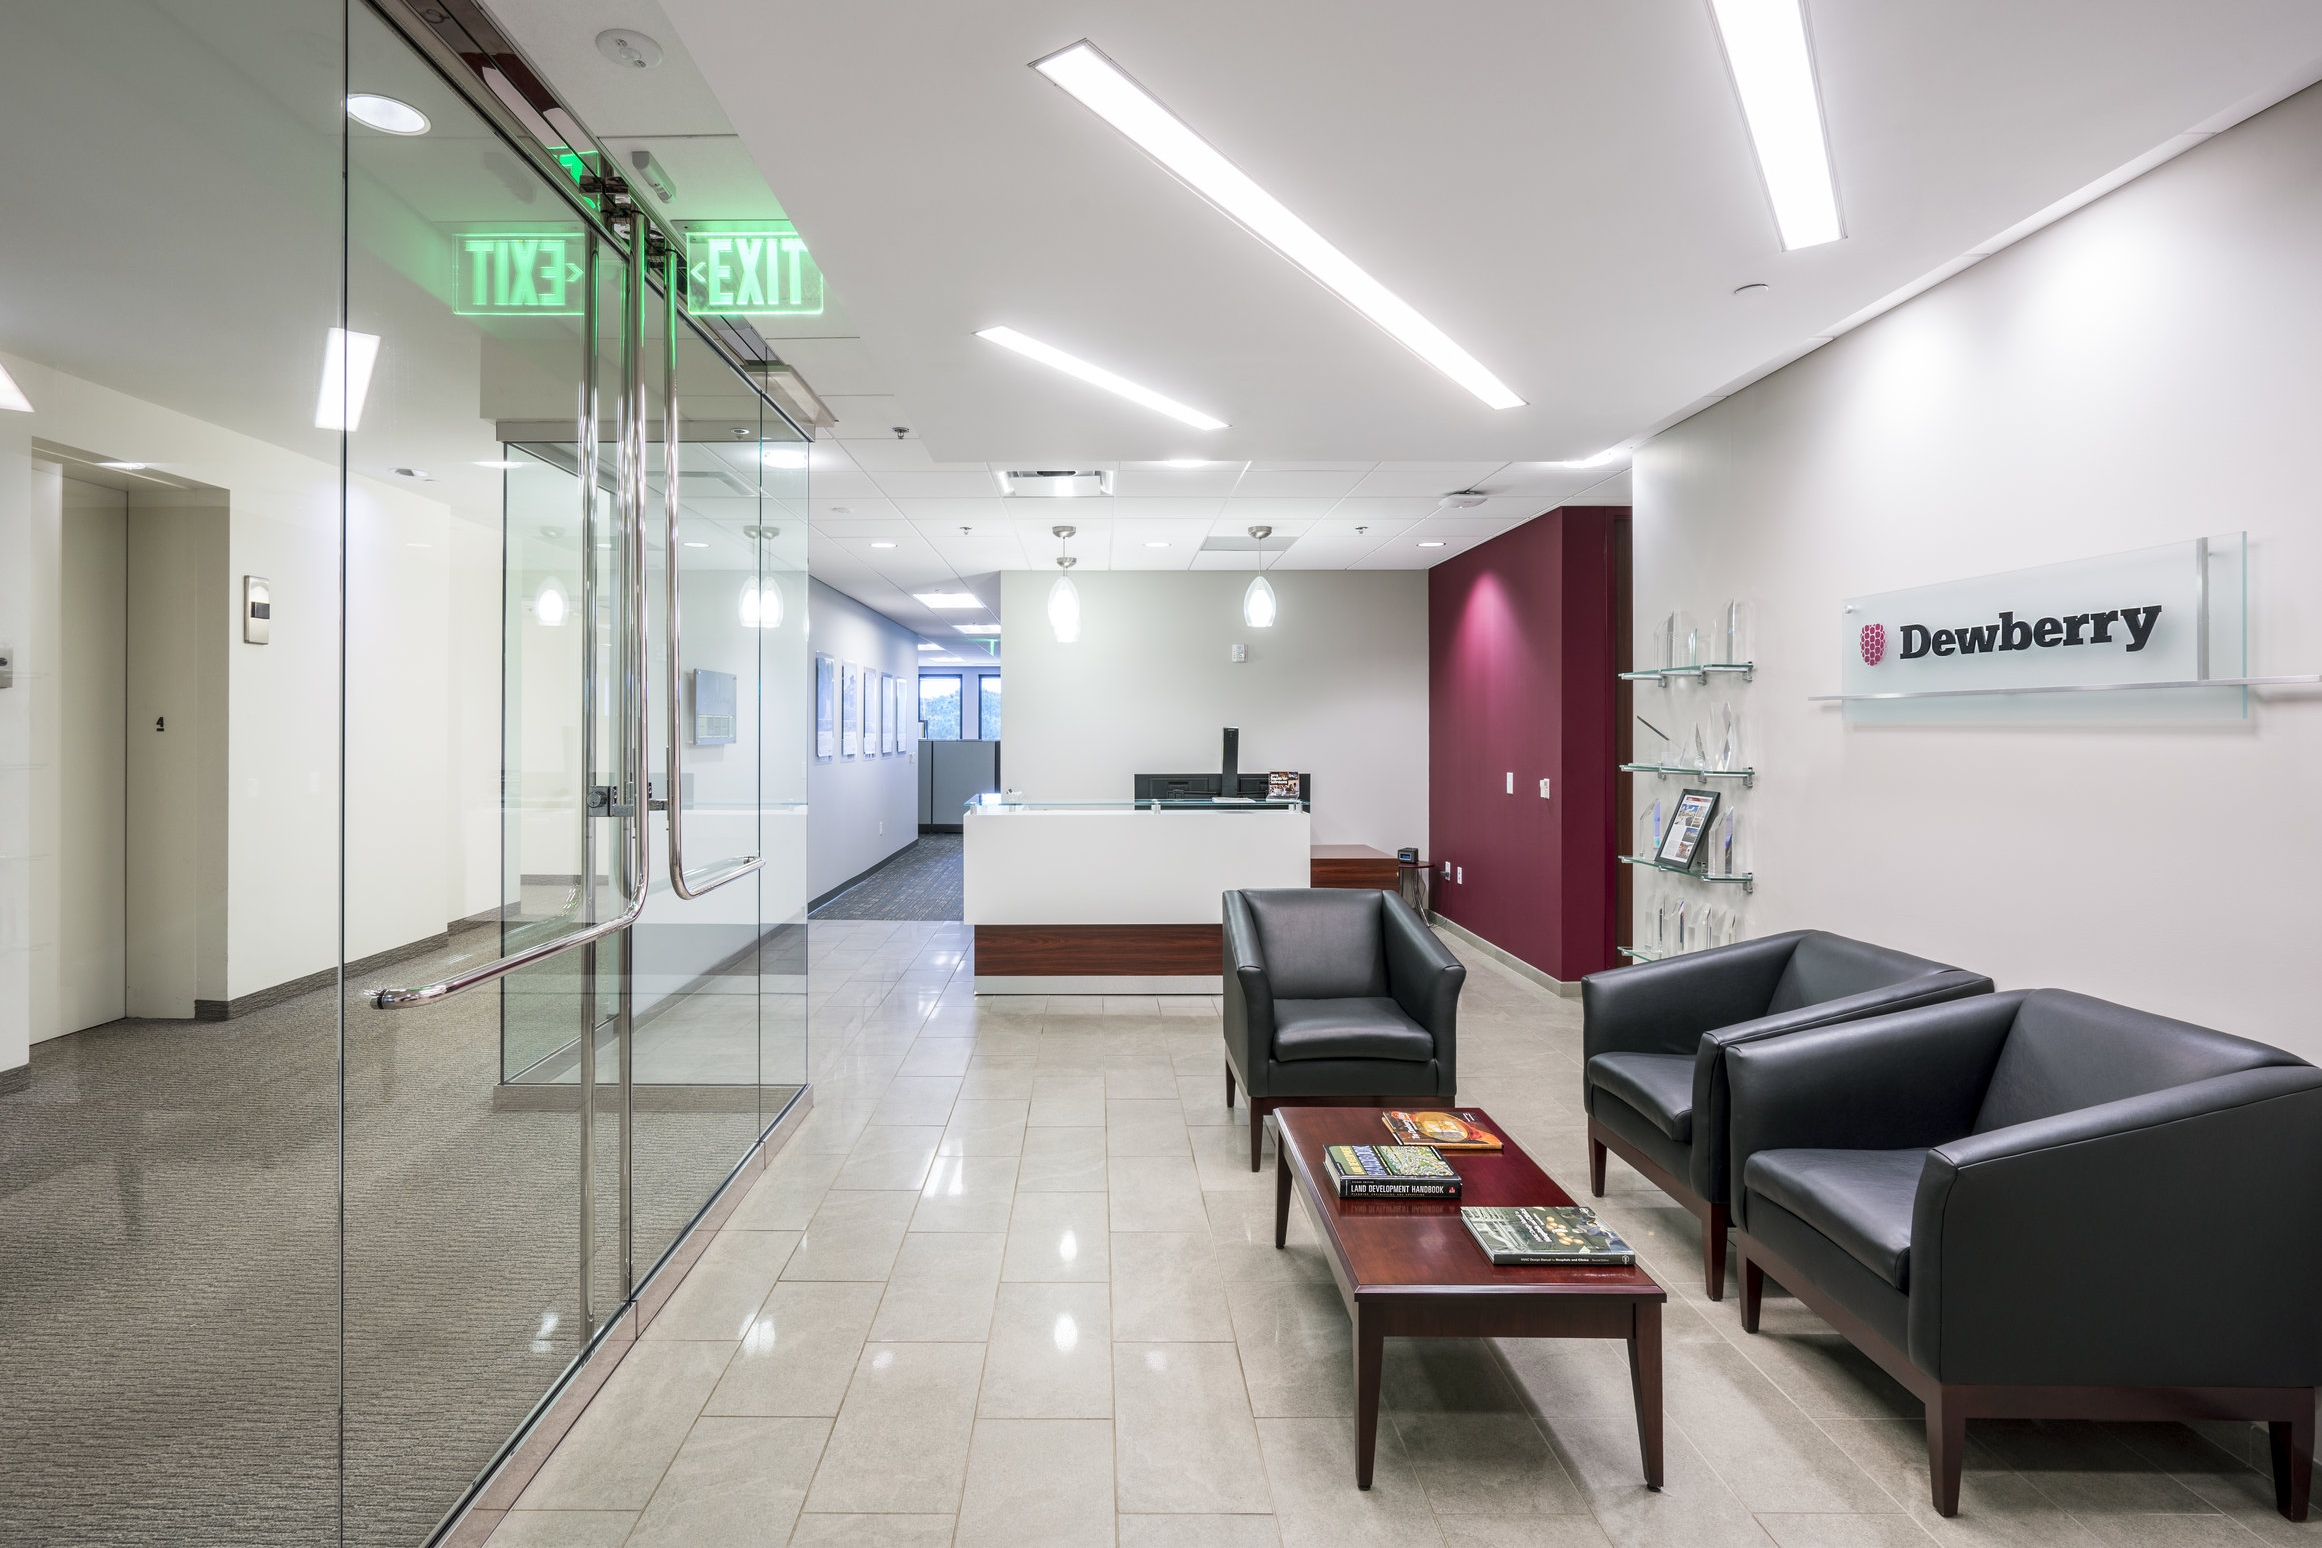 Dewberry Office & Expansion - 02 Final.jpg